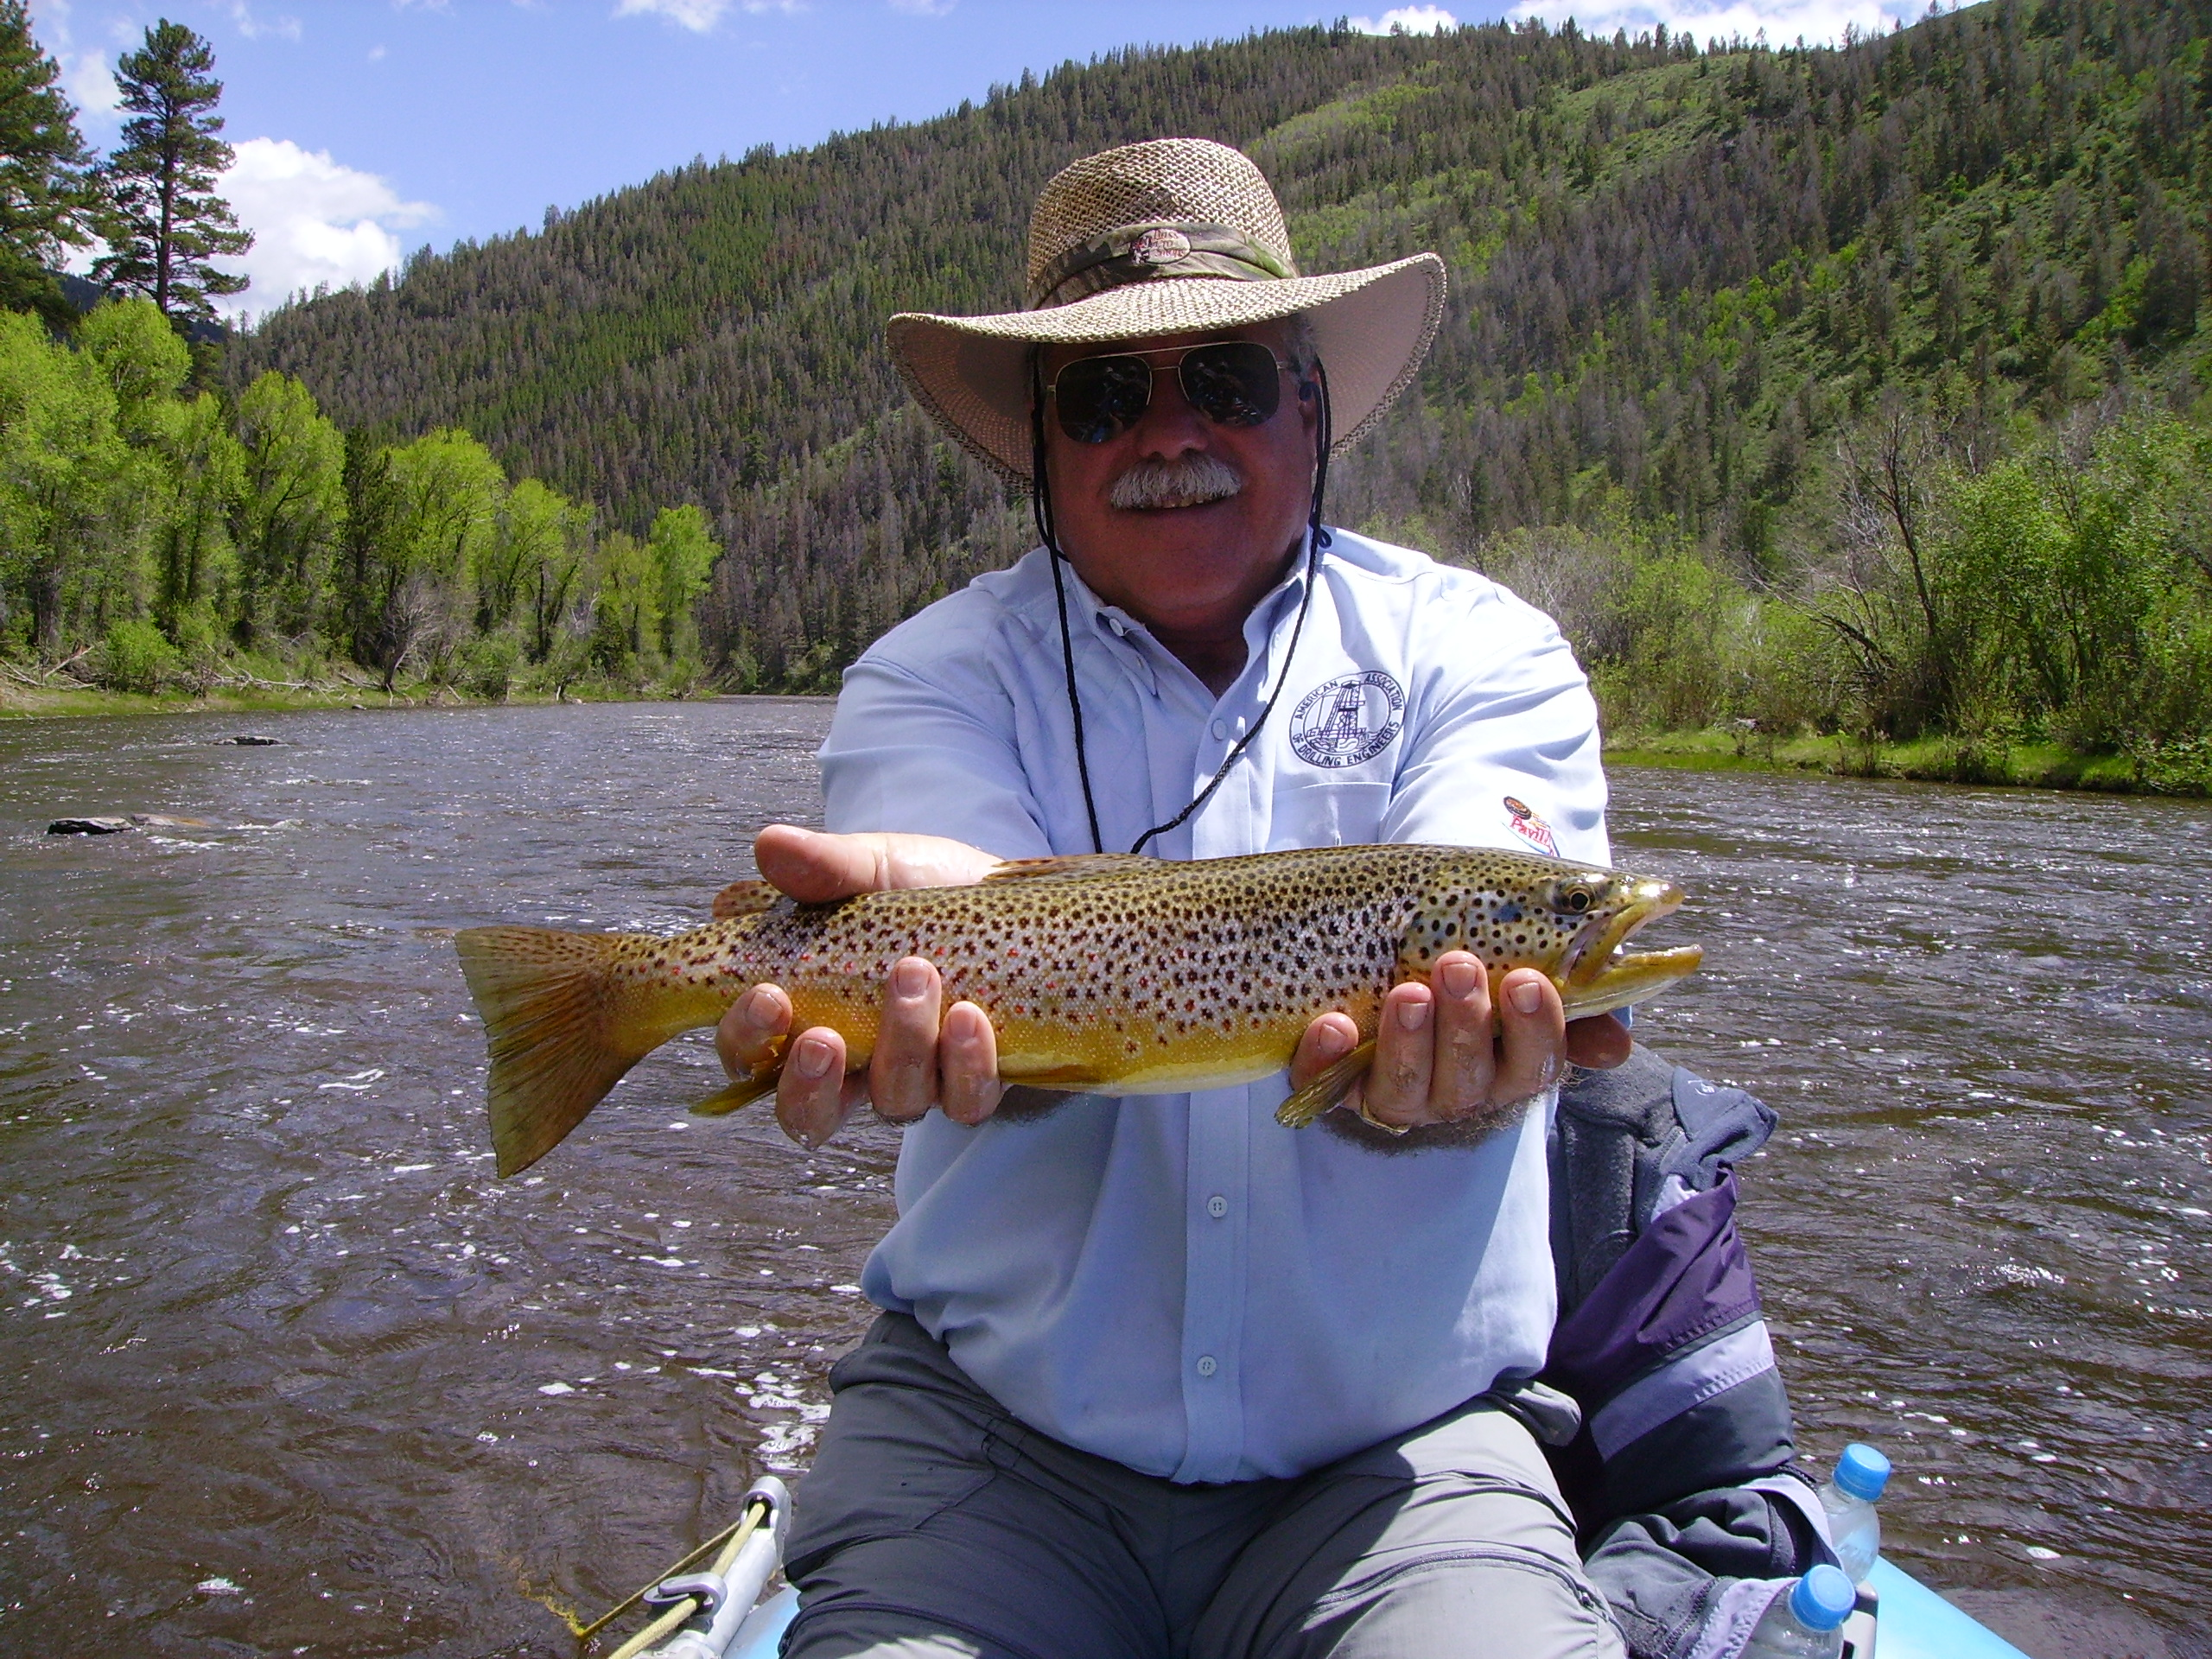 North platte encampment river two dogs guide service for Wyoming fly fishing